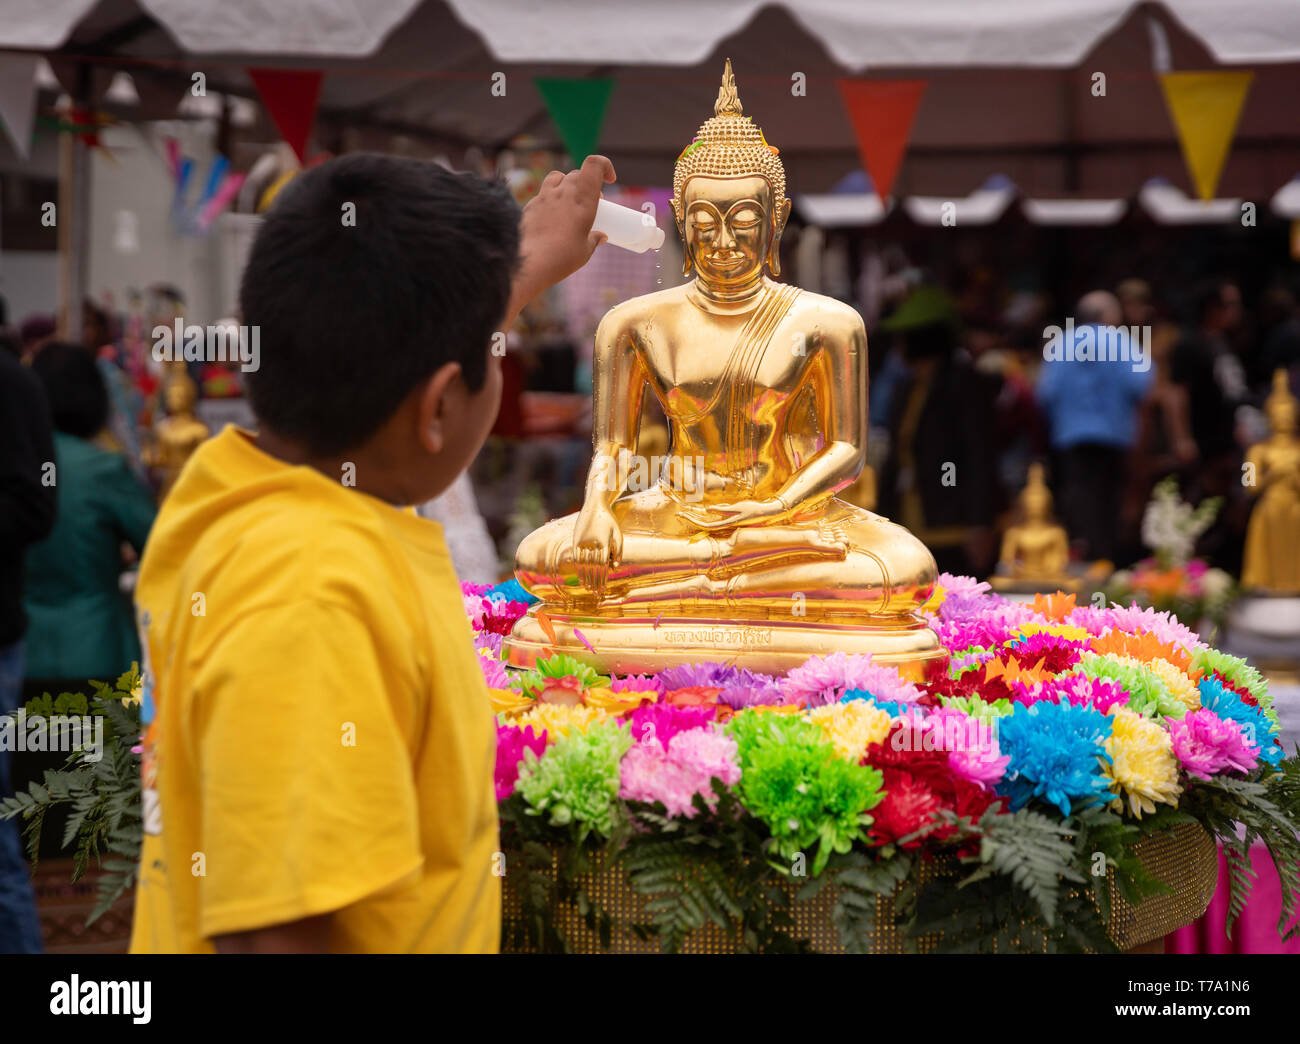 Sprinkling flower-scented water over Buddhist statue during Songkran Festival celebrating the Thai New Year, in Los Angeles, California. Stock Photo